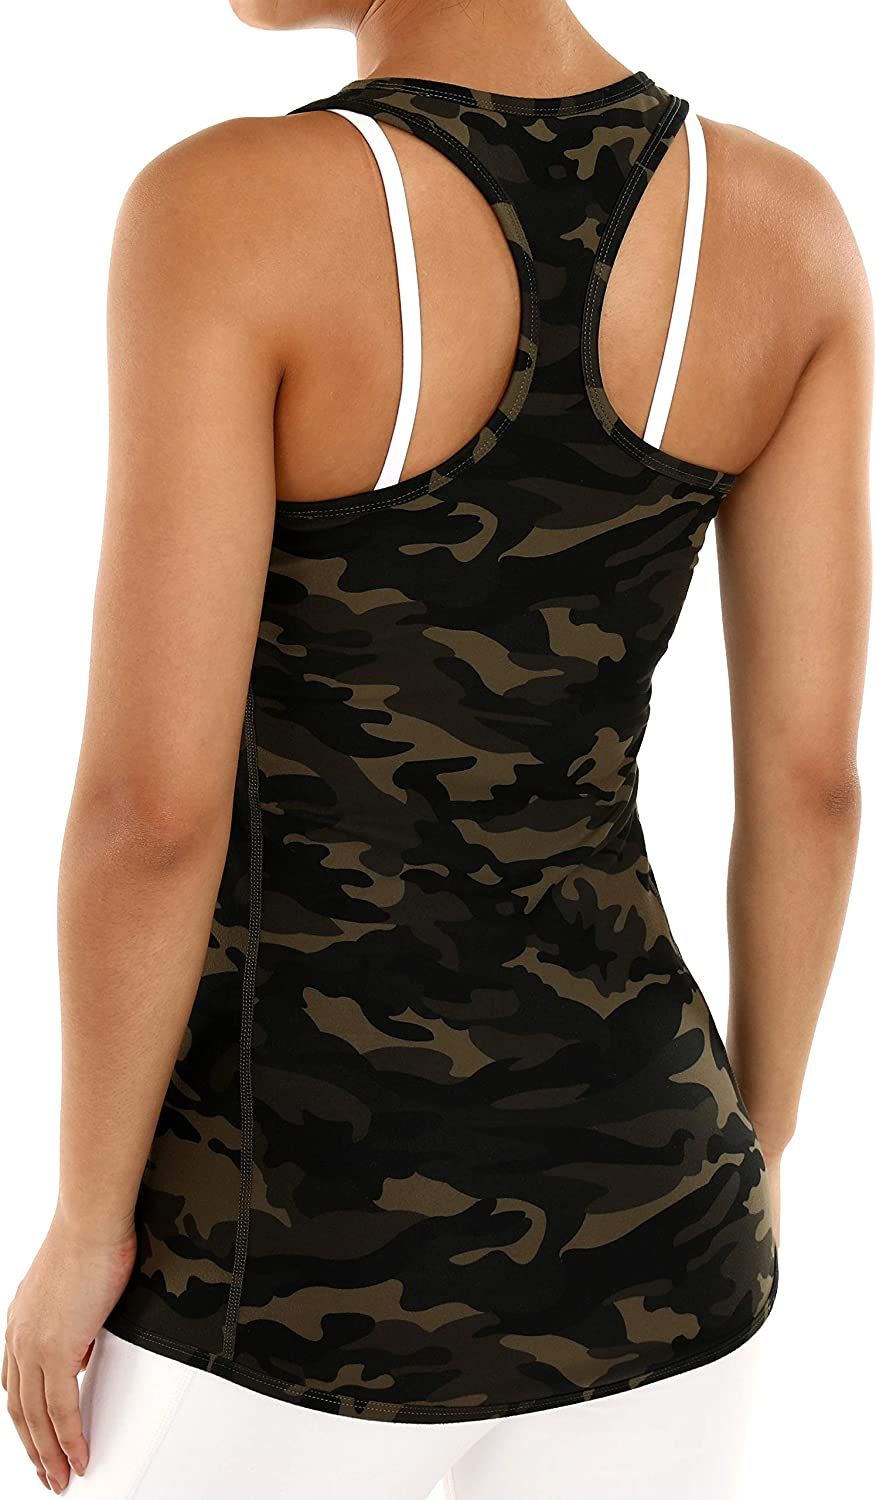 ODODOS Workout Tank Tops for Women Exercise Gym Yoga Shirts Strappy Athletic Tanks with Side Pocket